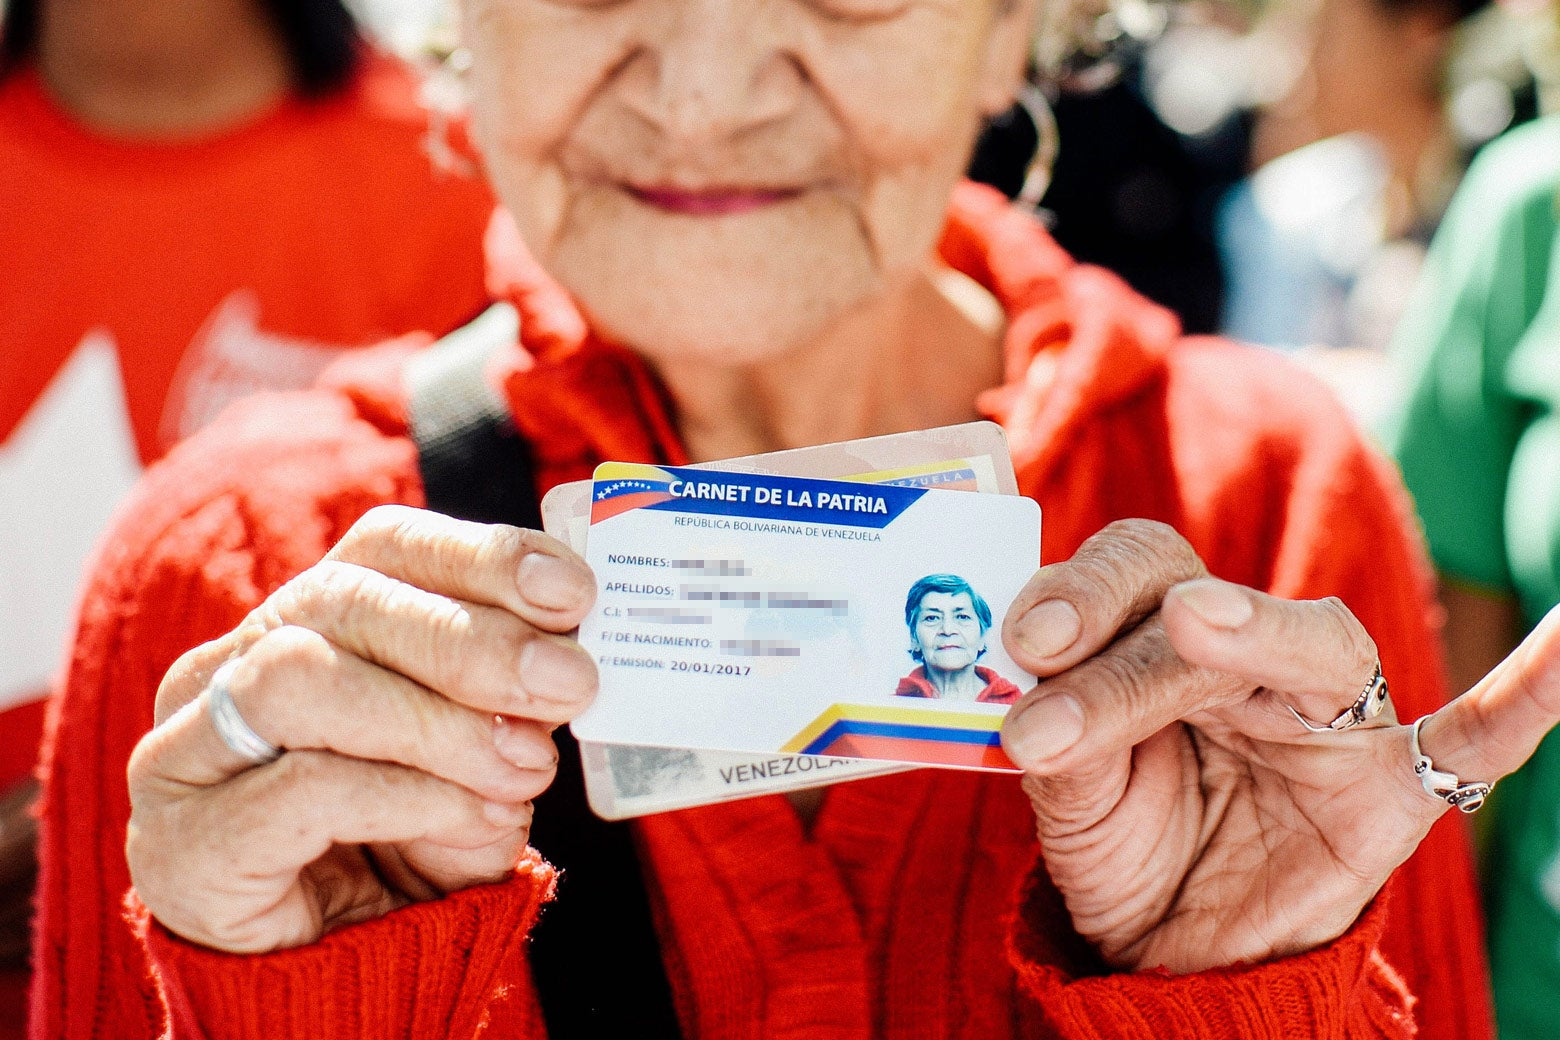 A woman holds up her card.